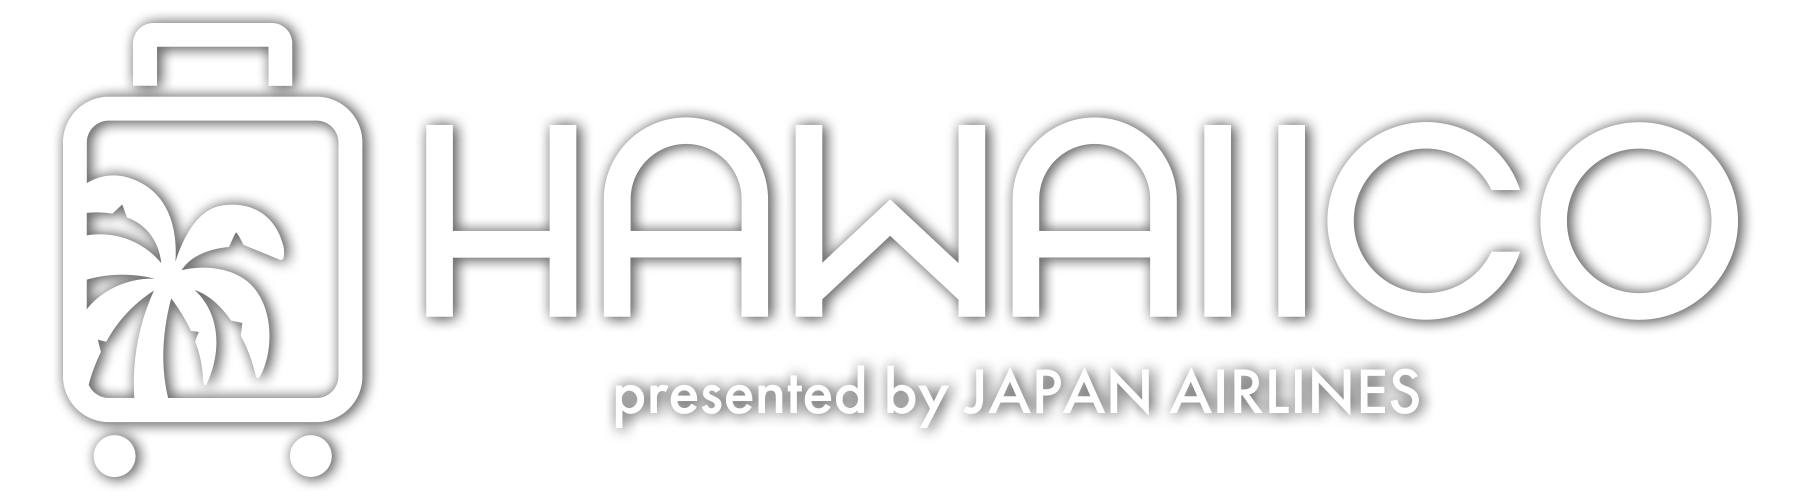 HAWAIICO presented by JAPAN AIRLINES